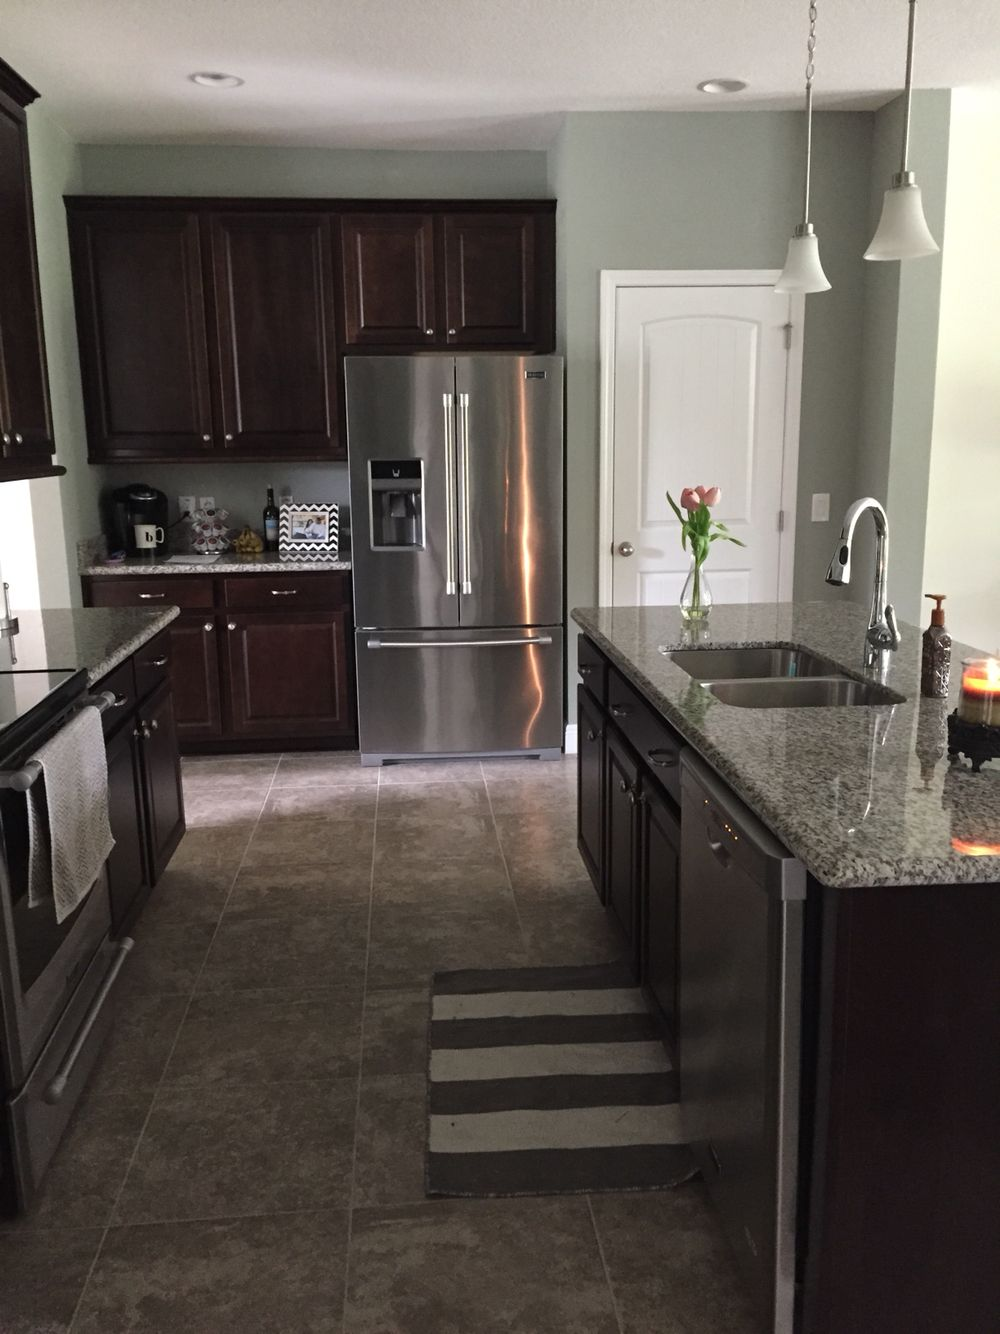 Paint Is Sherwin Williams Oyster Bay My Home Pinterest Sherwin Williams Oyster Bay And